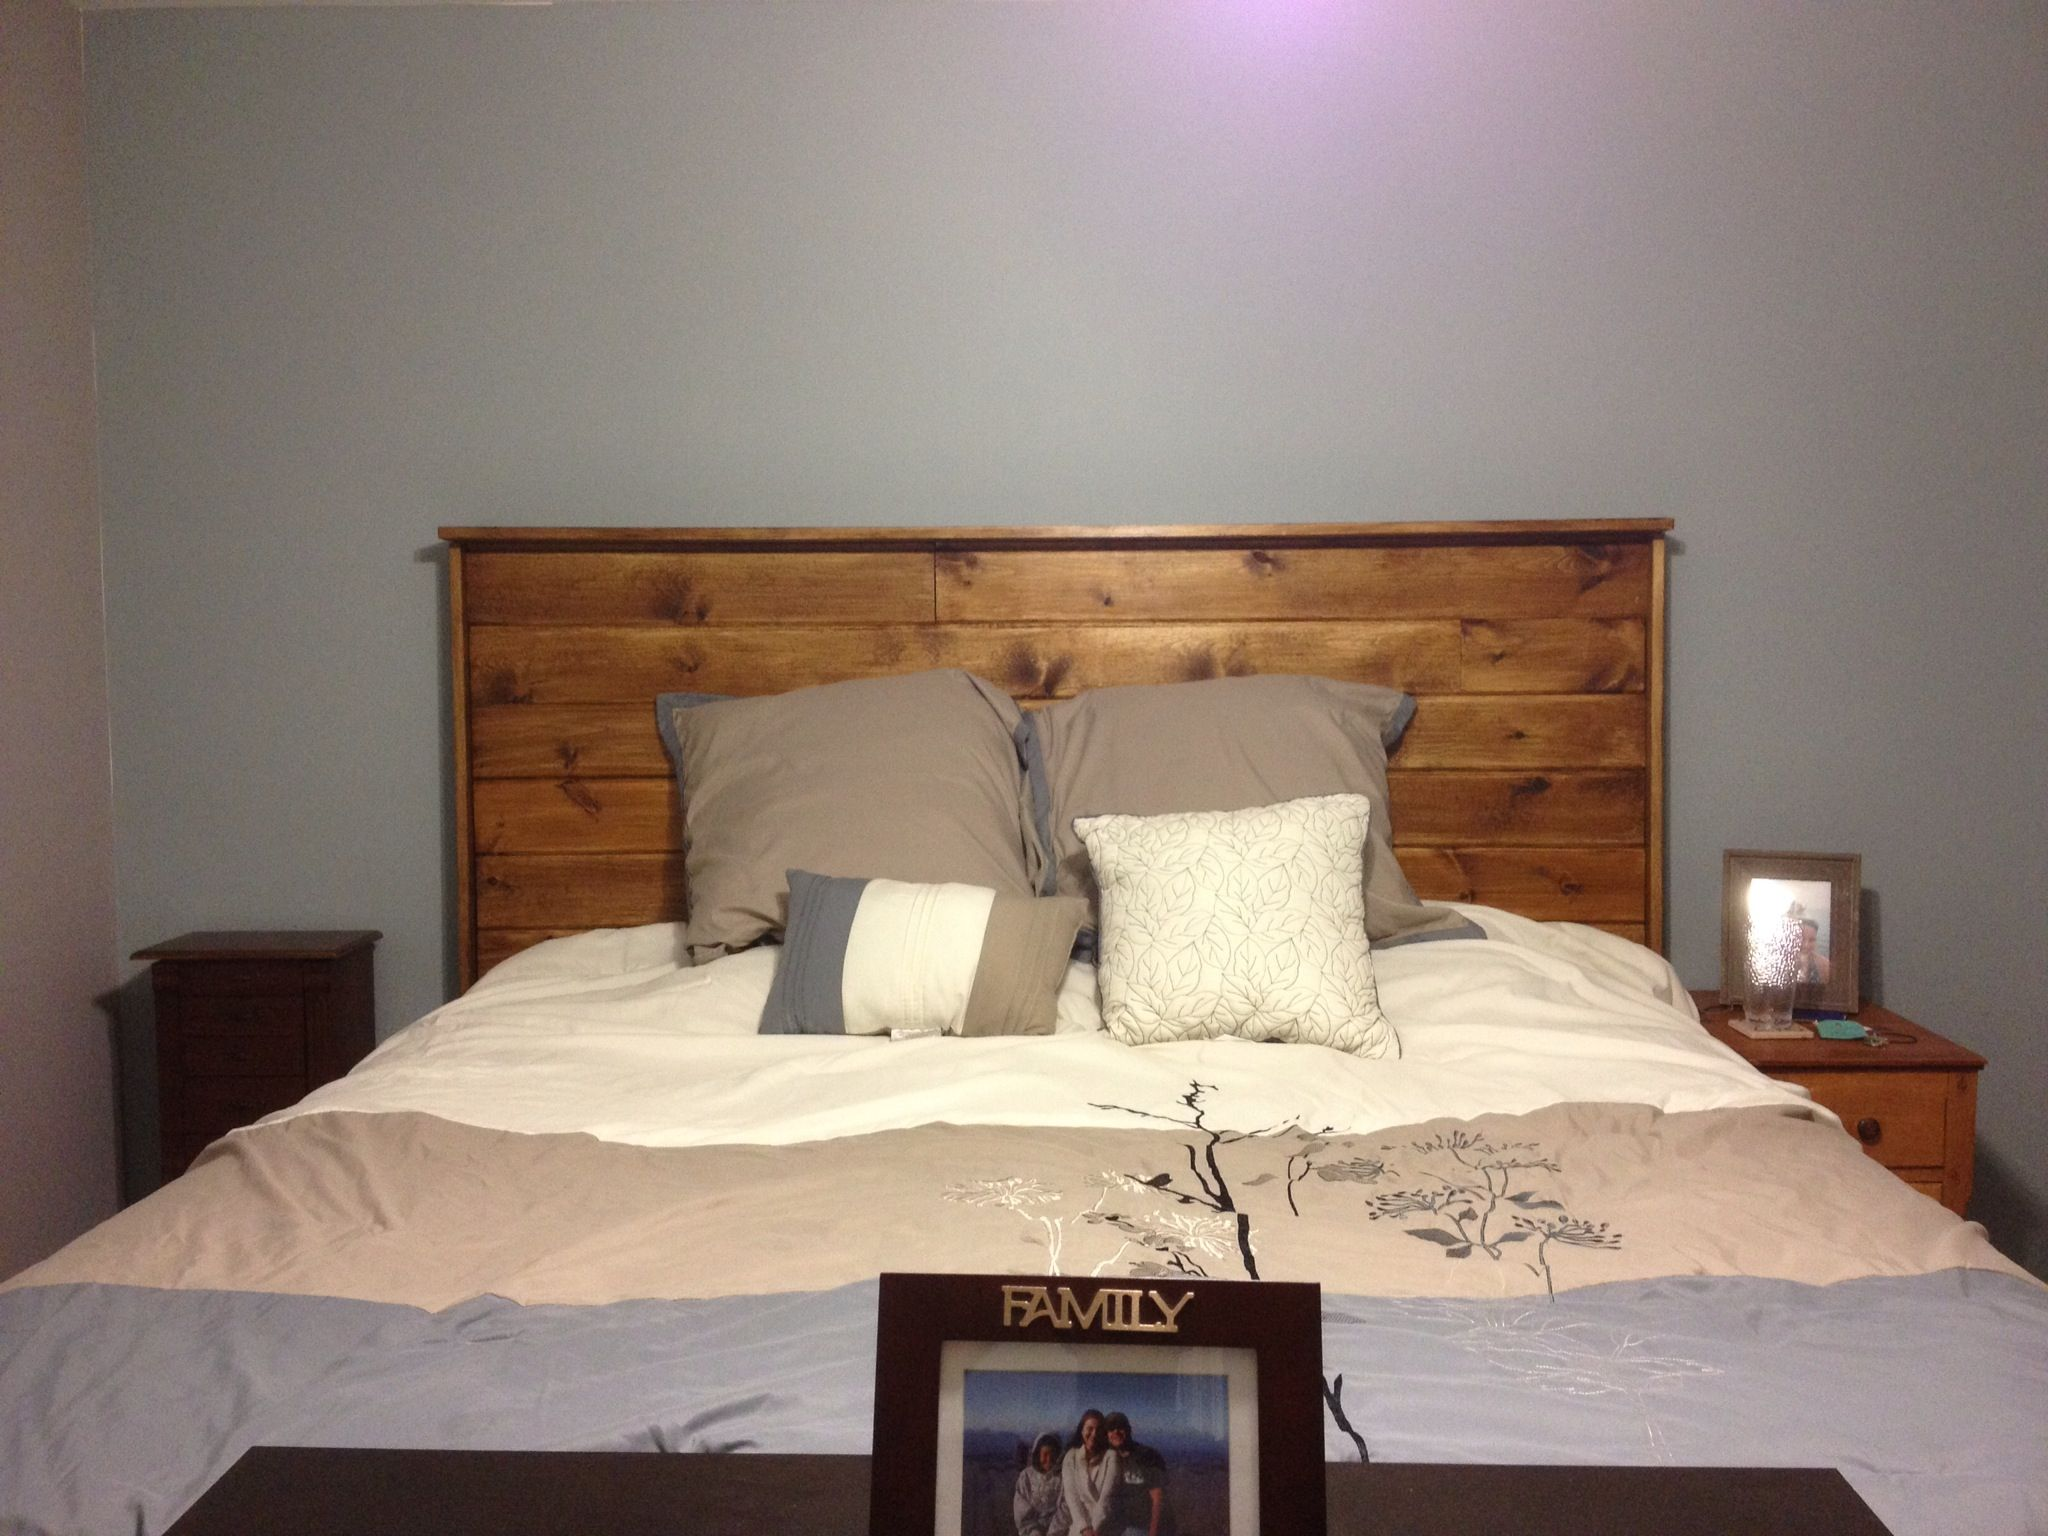 Homemade headboard for king size bed home decor Bed headboard design